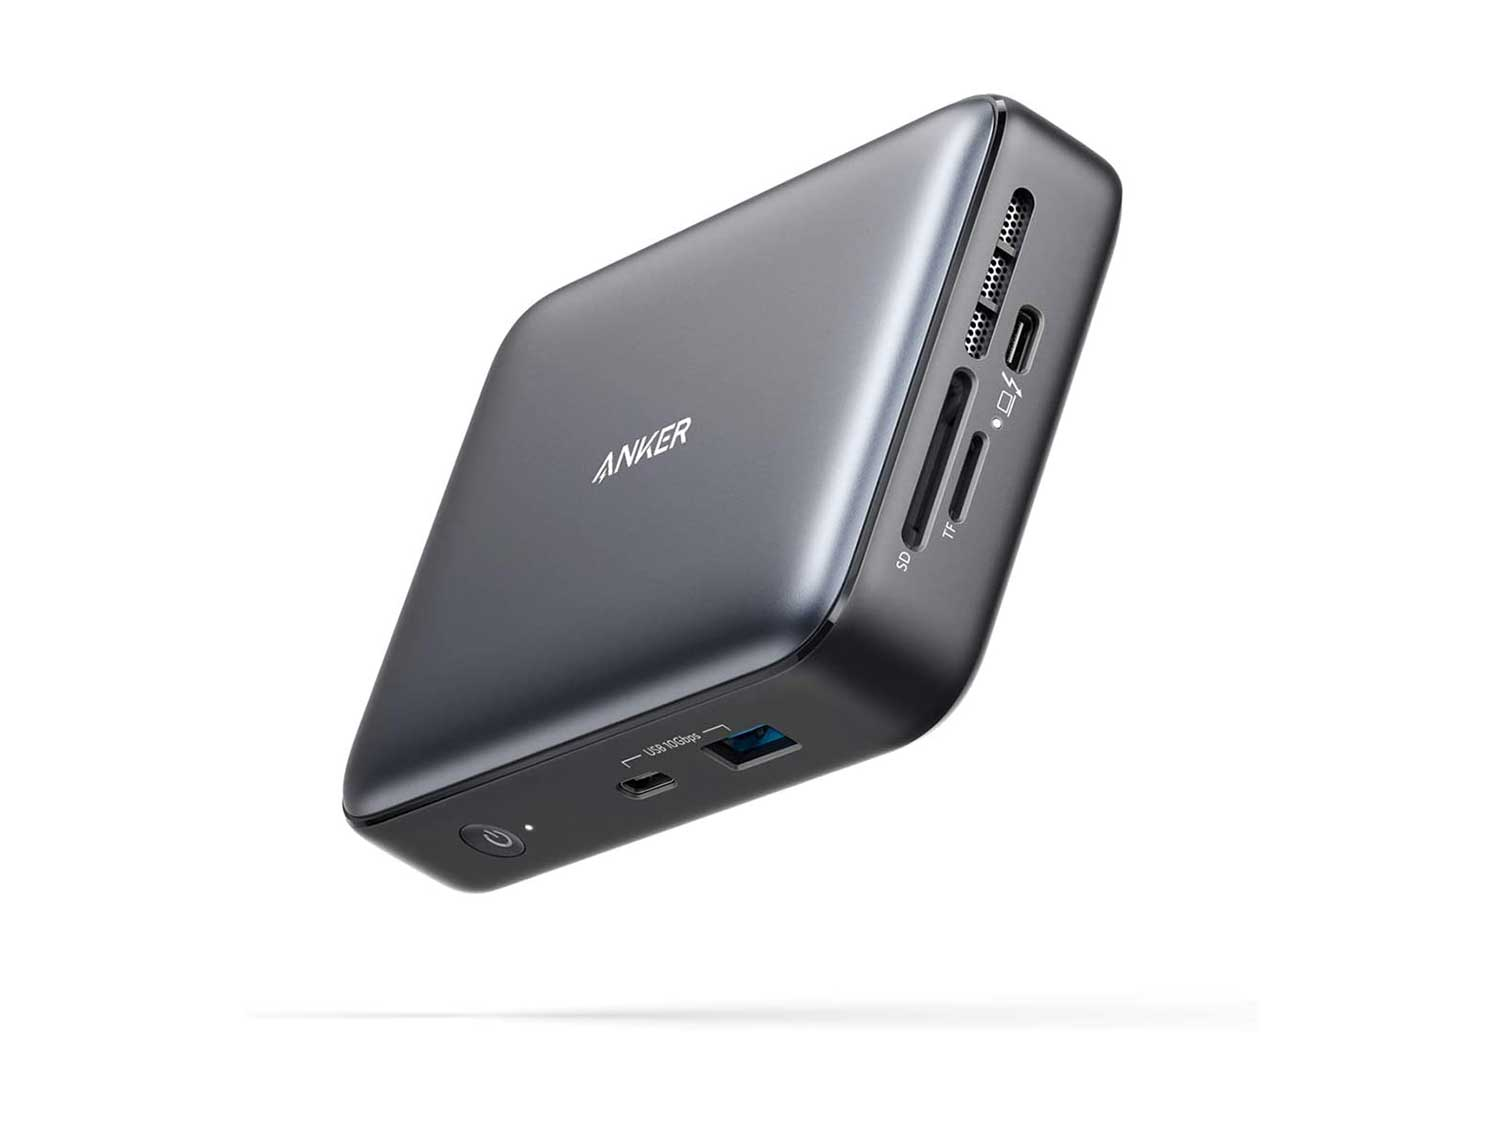 Anker Docking Station, PowerExpand 7-in-1 Thunderbolt 3 Mini Dock for USB-C Laptops, Max 45W Charging for Laptop, 4K HDMI, 1Gbps Ethernet, USB-A Gen 2, USB-C Gen 2, SD 4.0 (Power Cord Included)